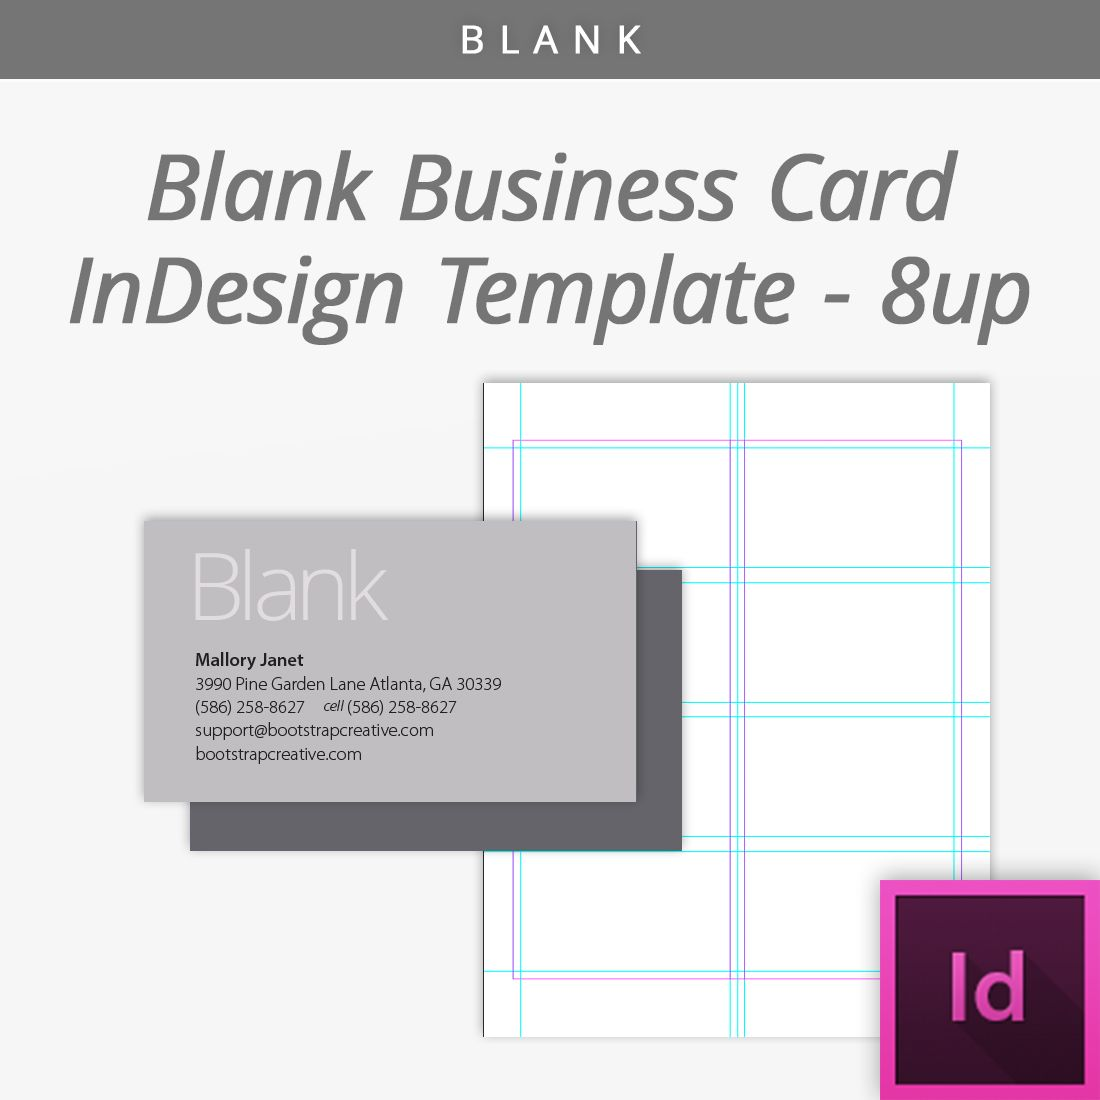 Blank indesign business card template 8 up free download blank indesign business card template 8 up free download designtemplate wajeb